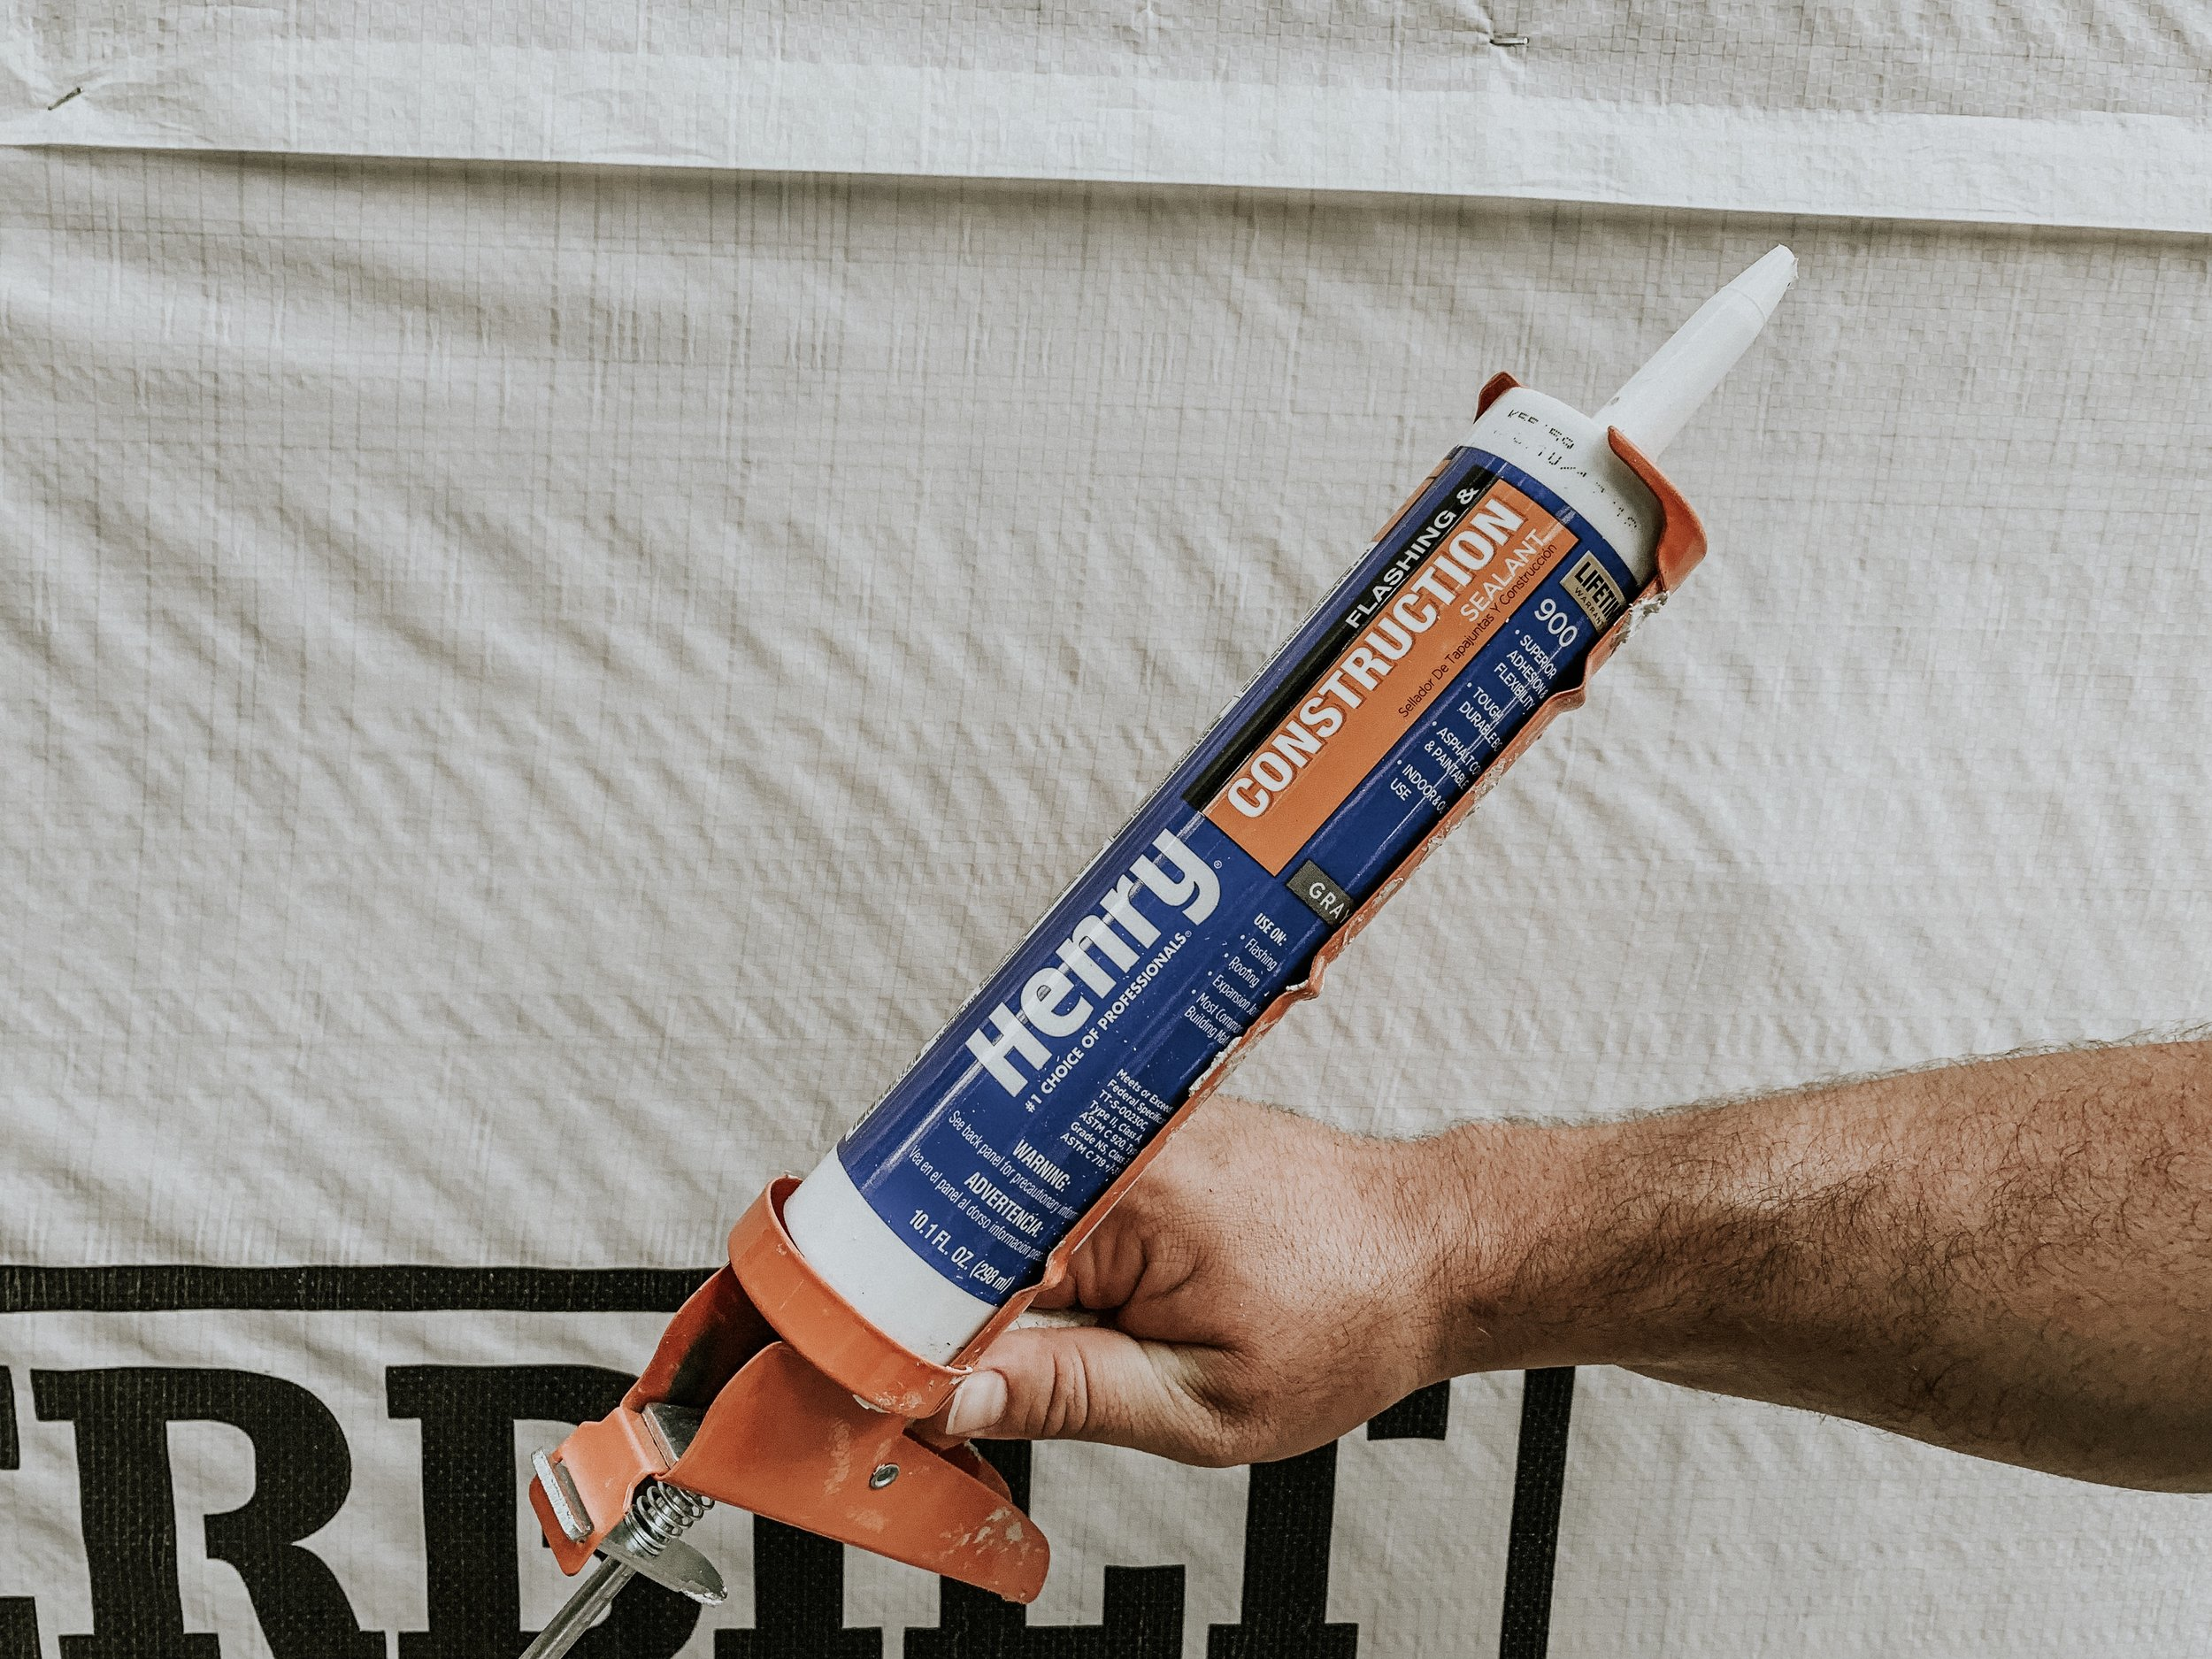 Henry Construction adhesive